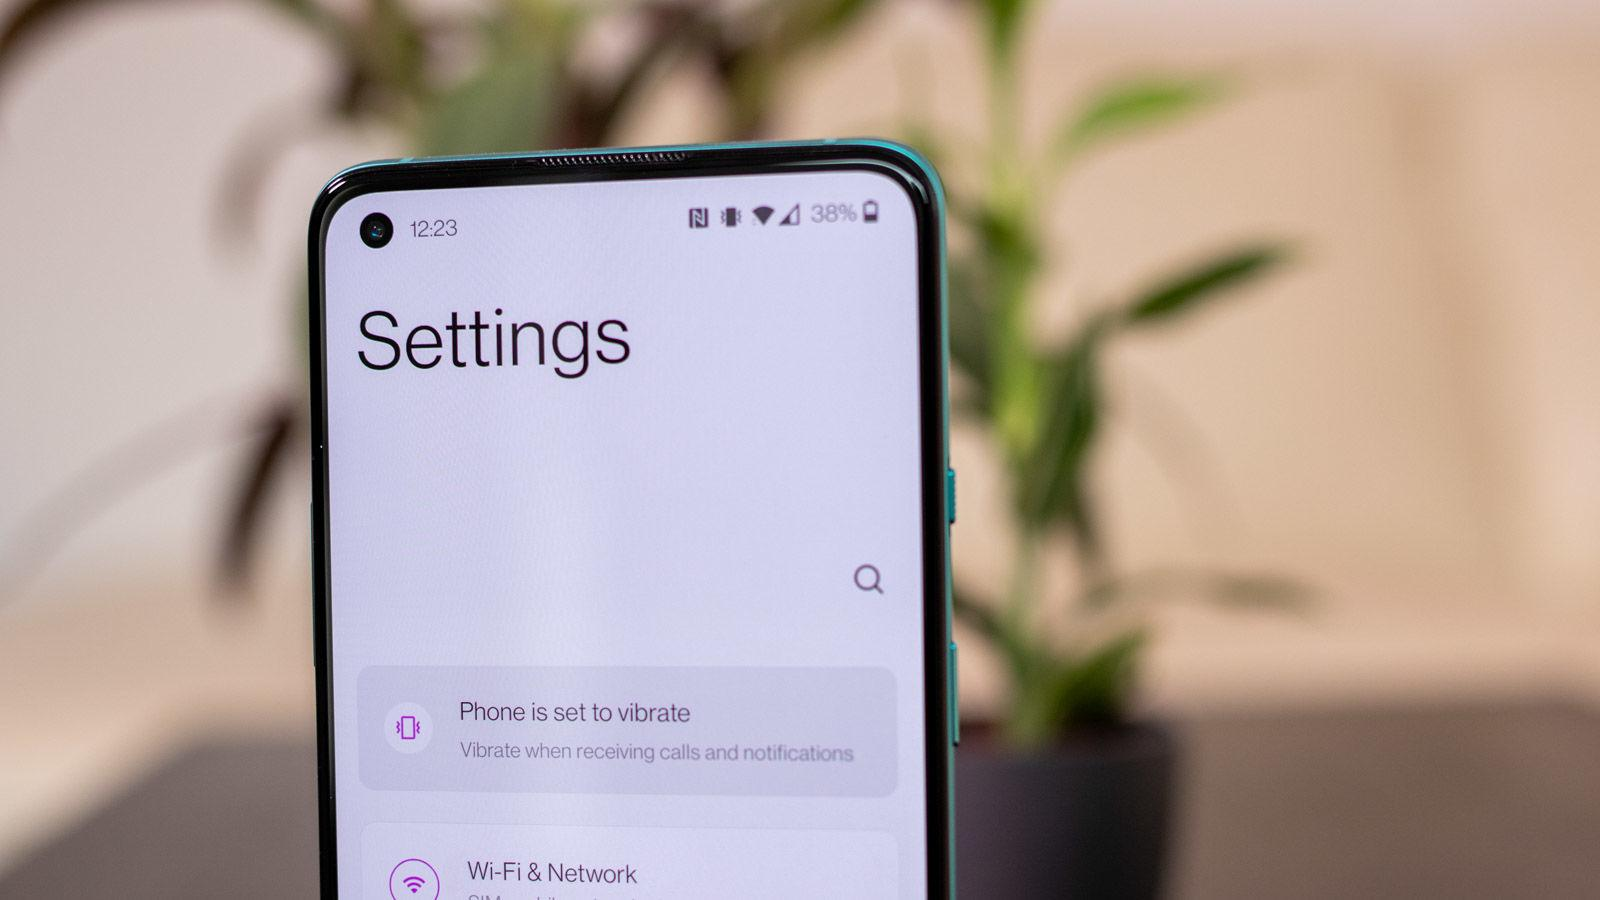 OnePlus 8T Settings